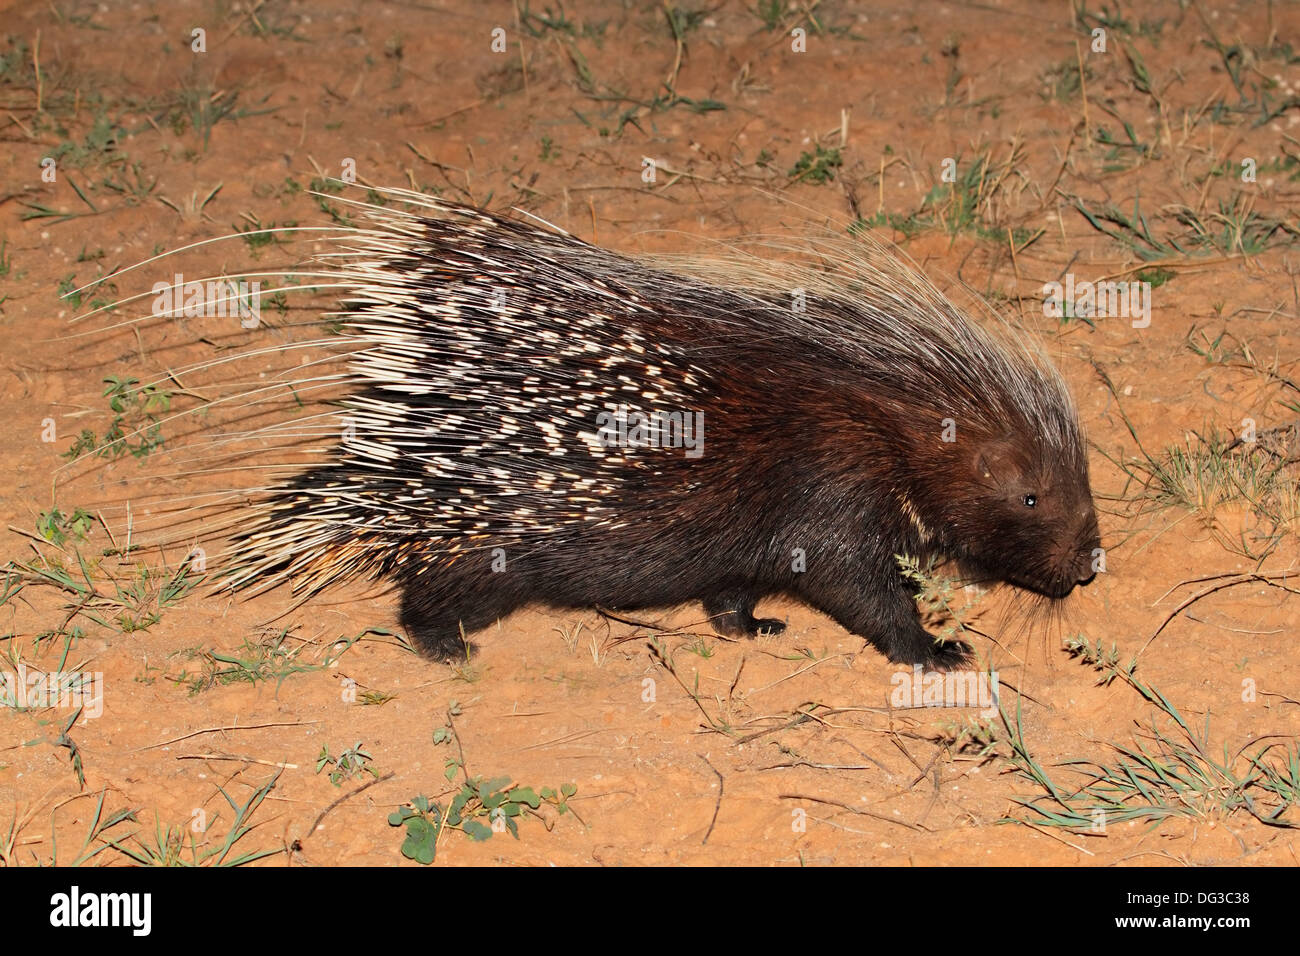 Cape porcupine (Hystrix africaeaustralis), South Africa - Stock Image